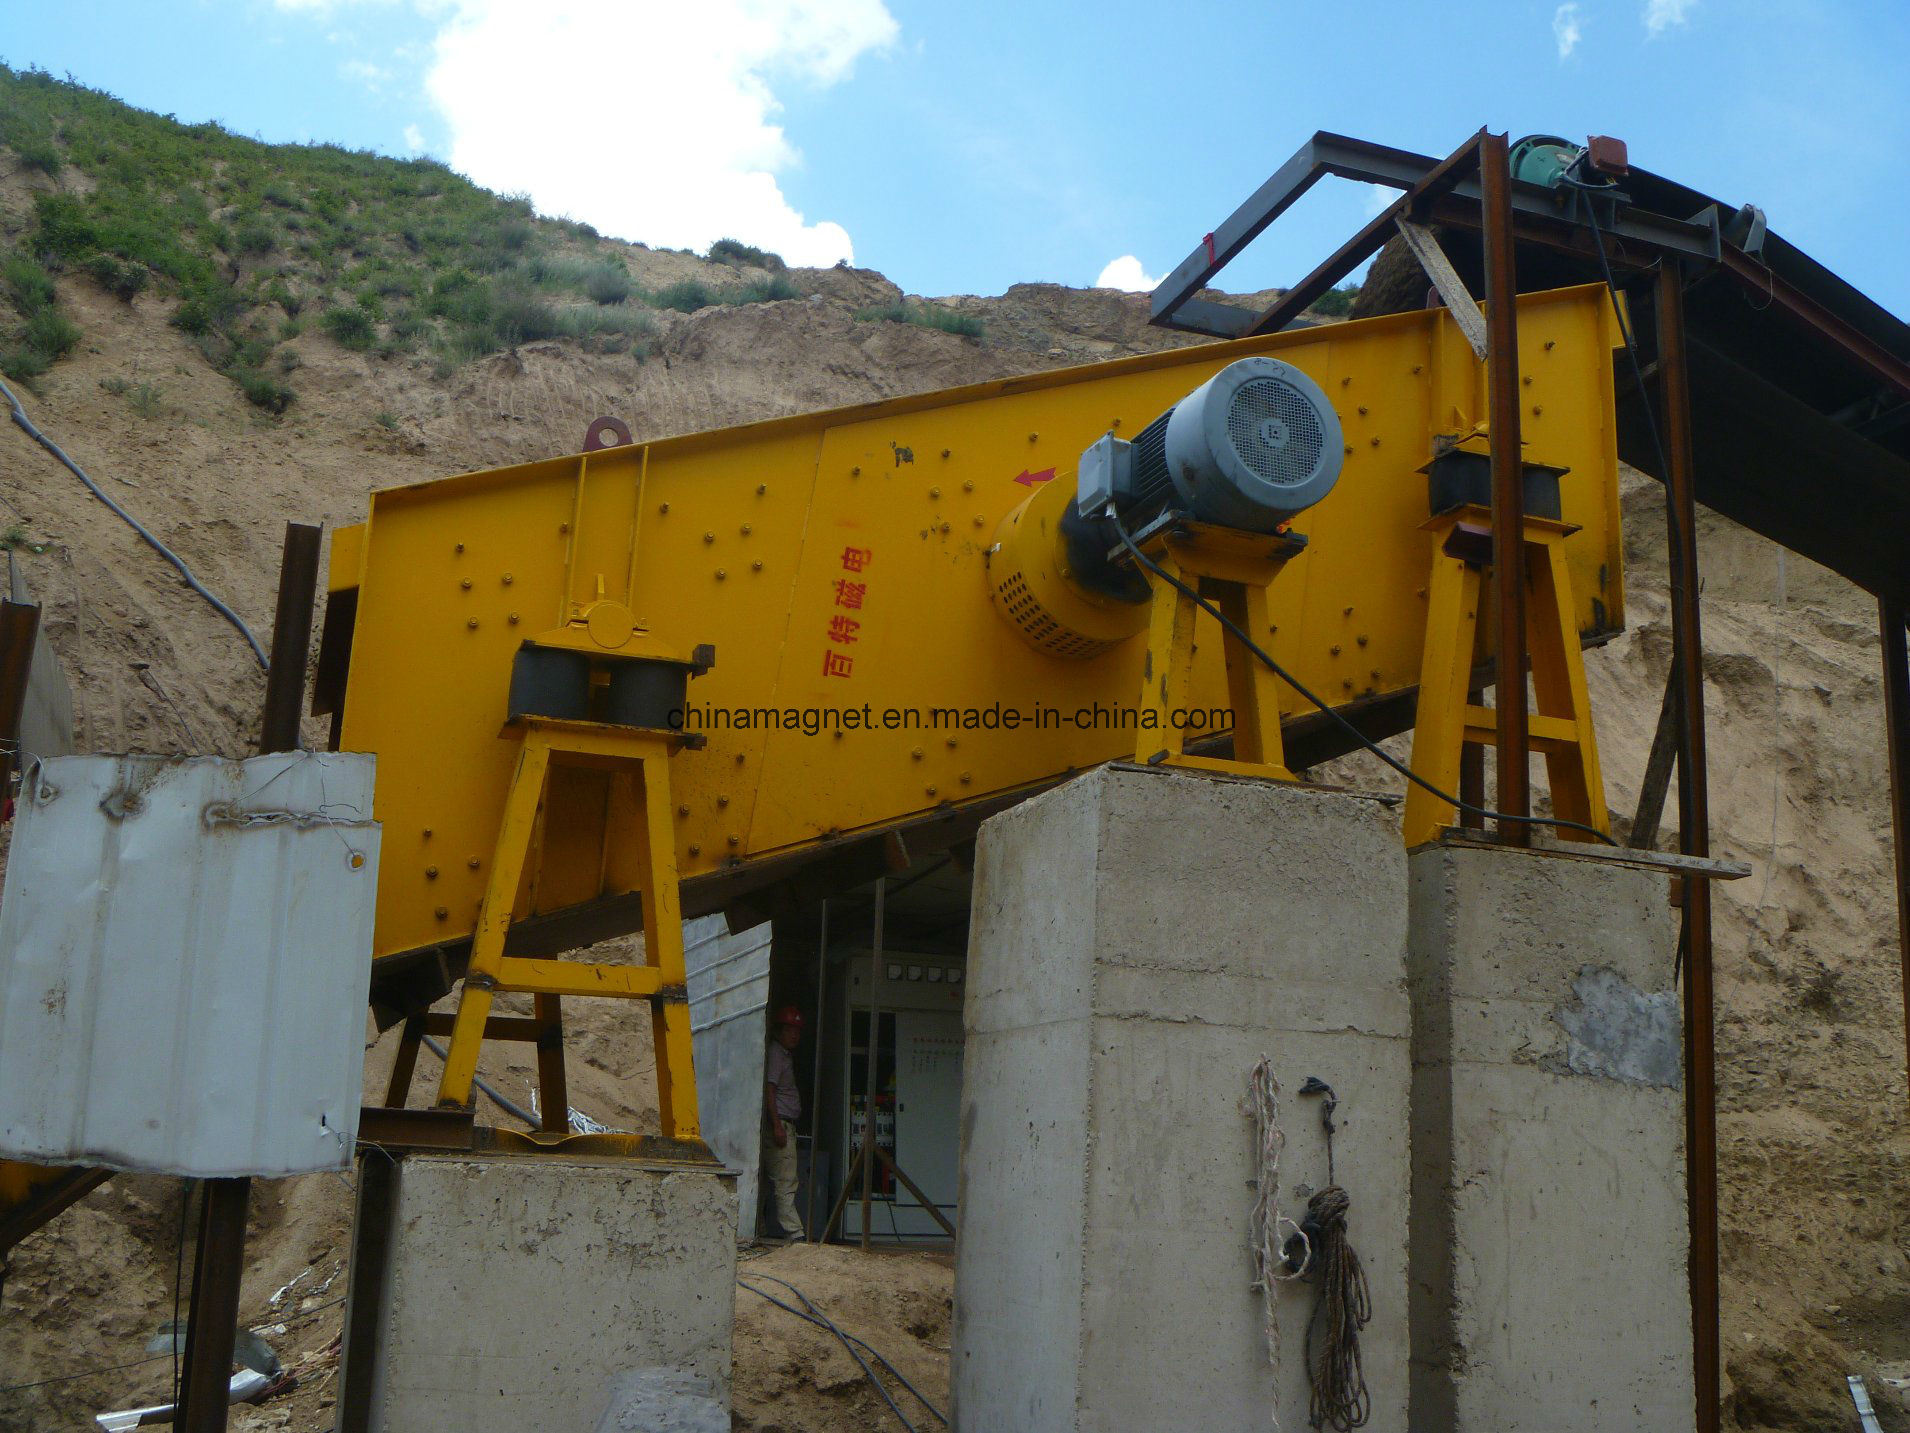 Yk Series Circular Vibrating Screen for Mining/Gold Mining Equipment